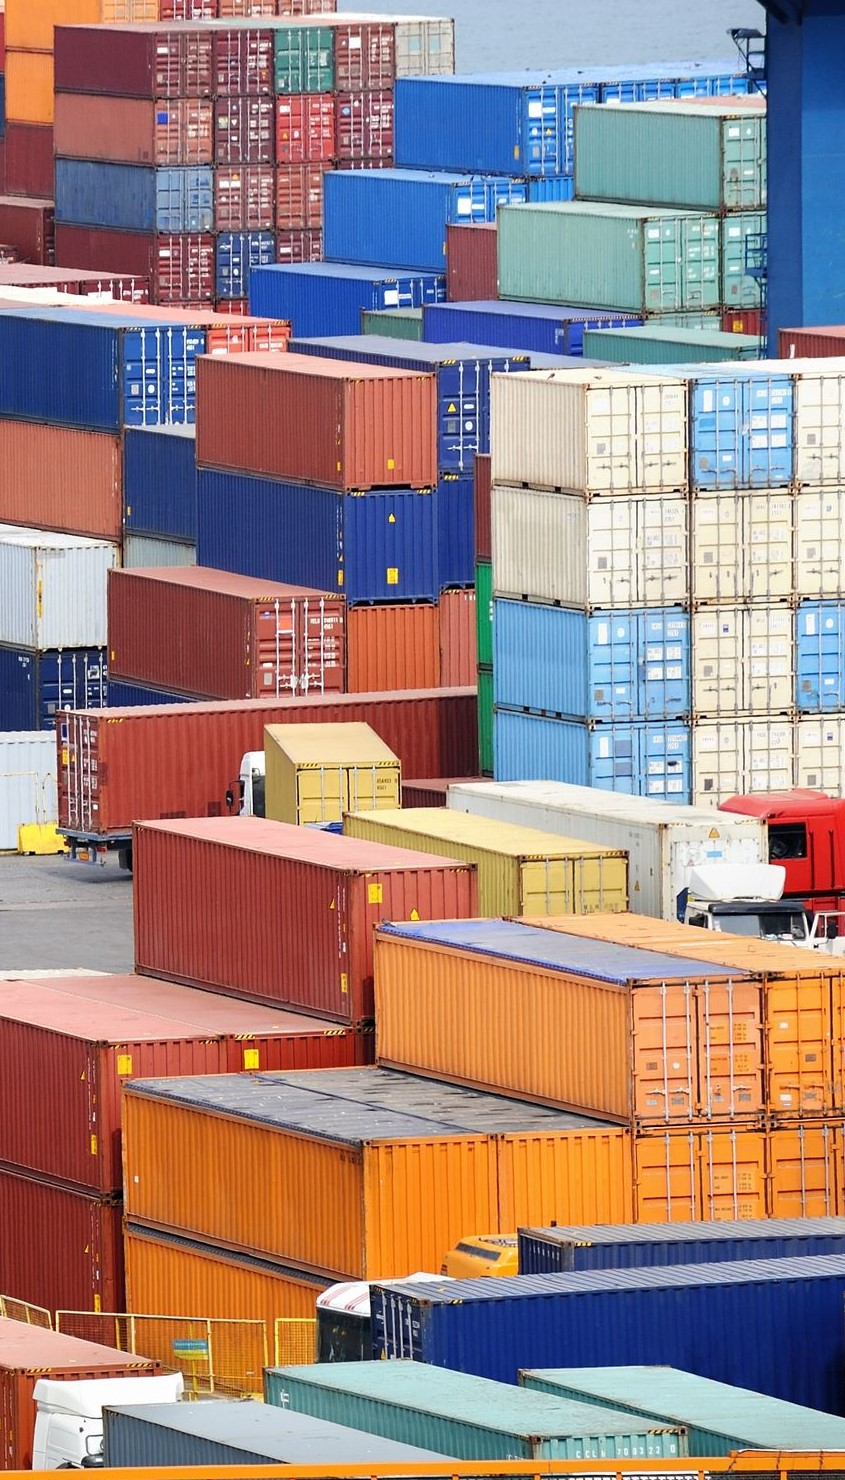 13724177_l-sea-container-warehouse-and-truck.jpg